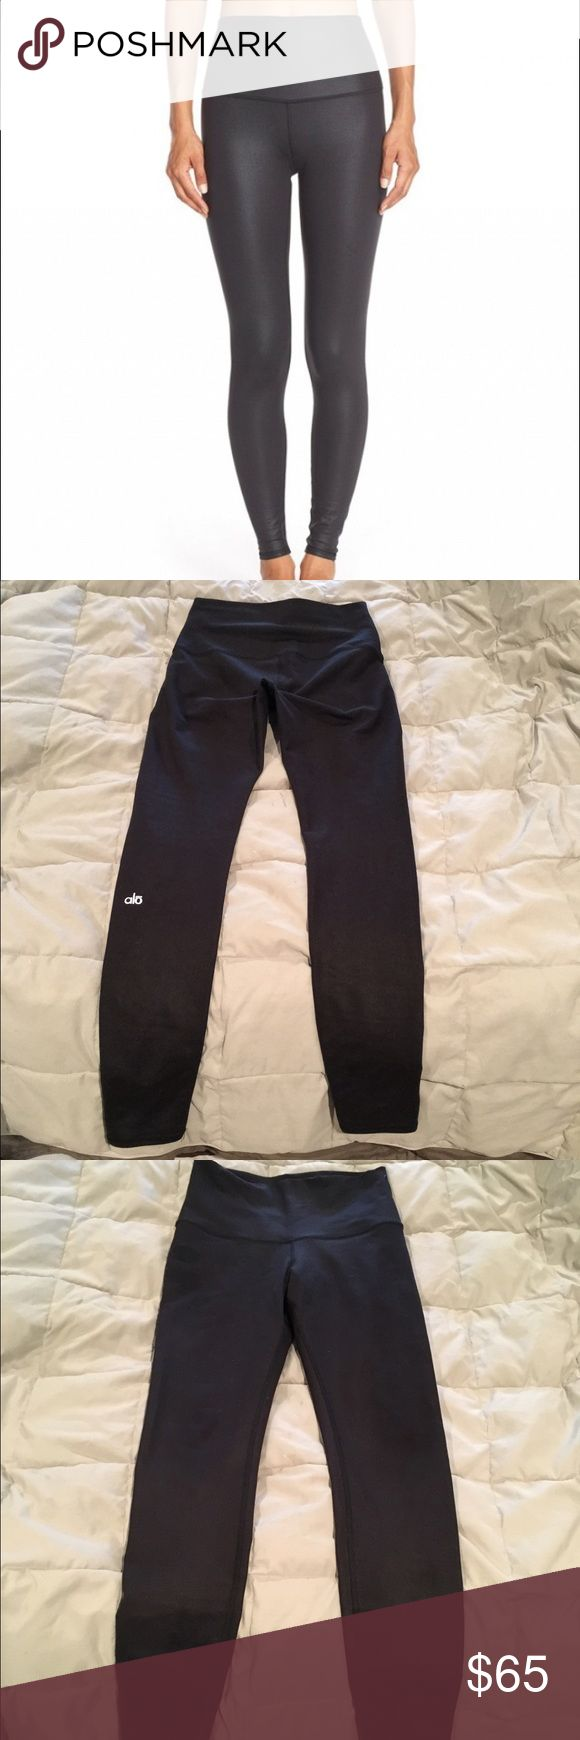 Alo Yoga high waisted sheer black leggings These are the sheer black high waisted workout leggings you want. They fit perfectly for a 6 in lululemon. The sheerness is not too much it's not too noticeable. Size M. Great condition. Well cared for. Goes perfect with my backless Alo Yoga tank. Bundle to save! ALO Yoga Pants